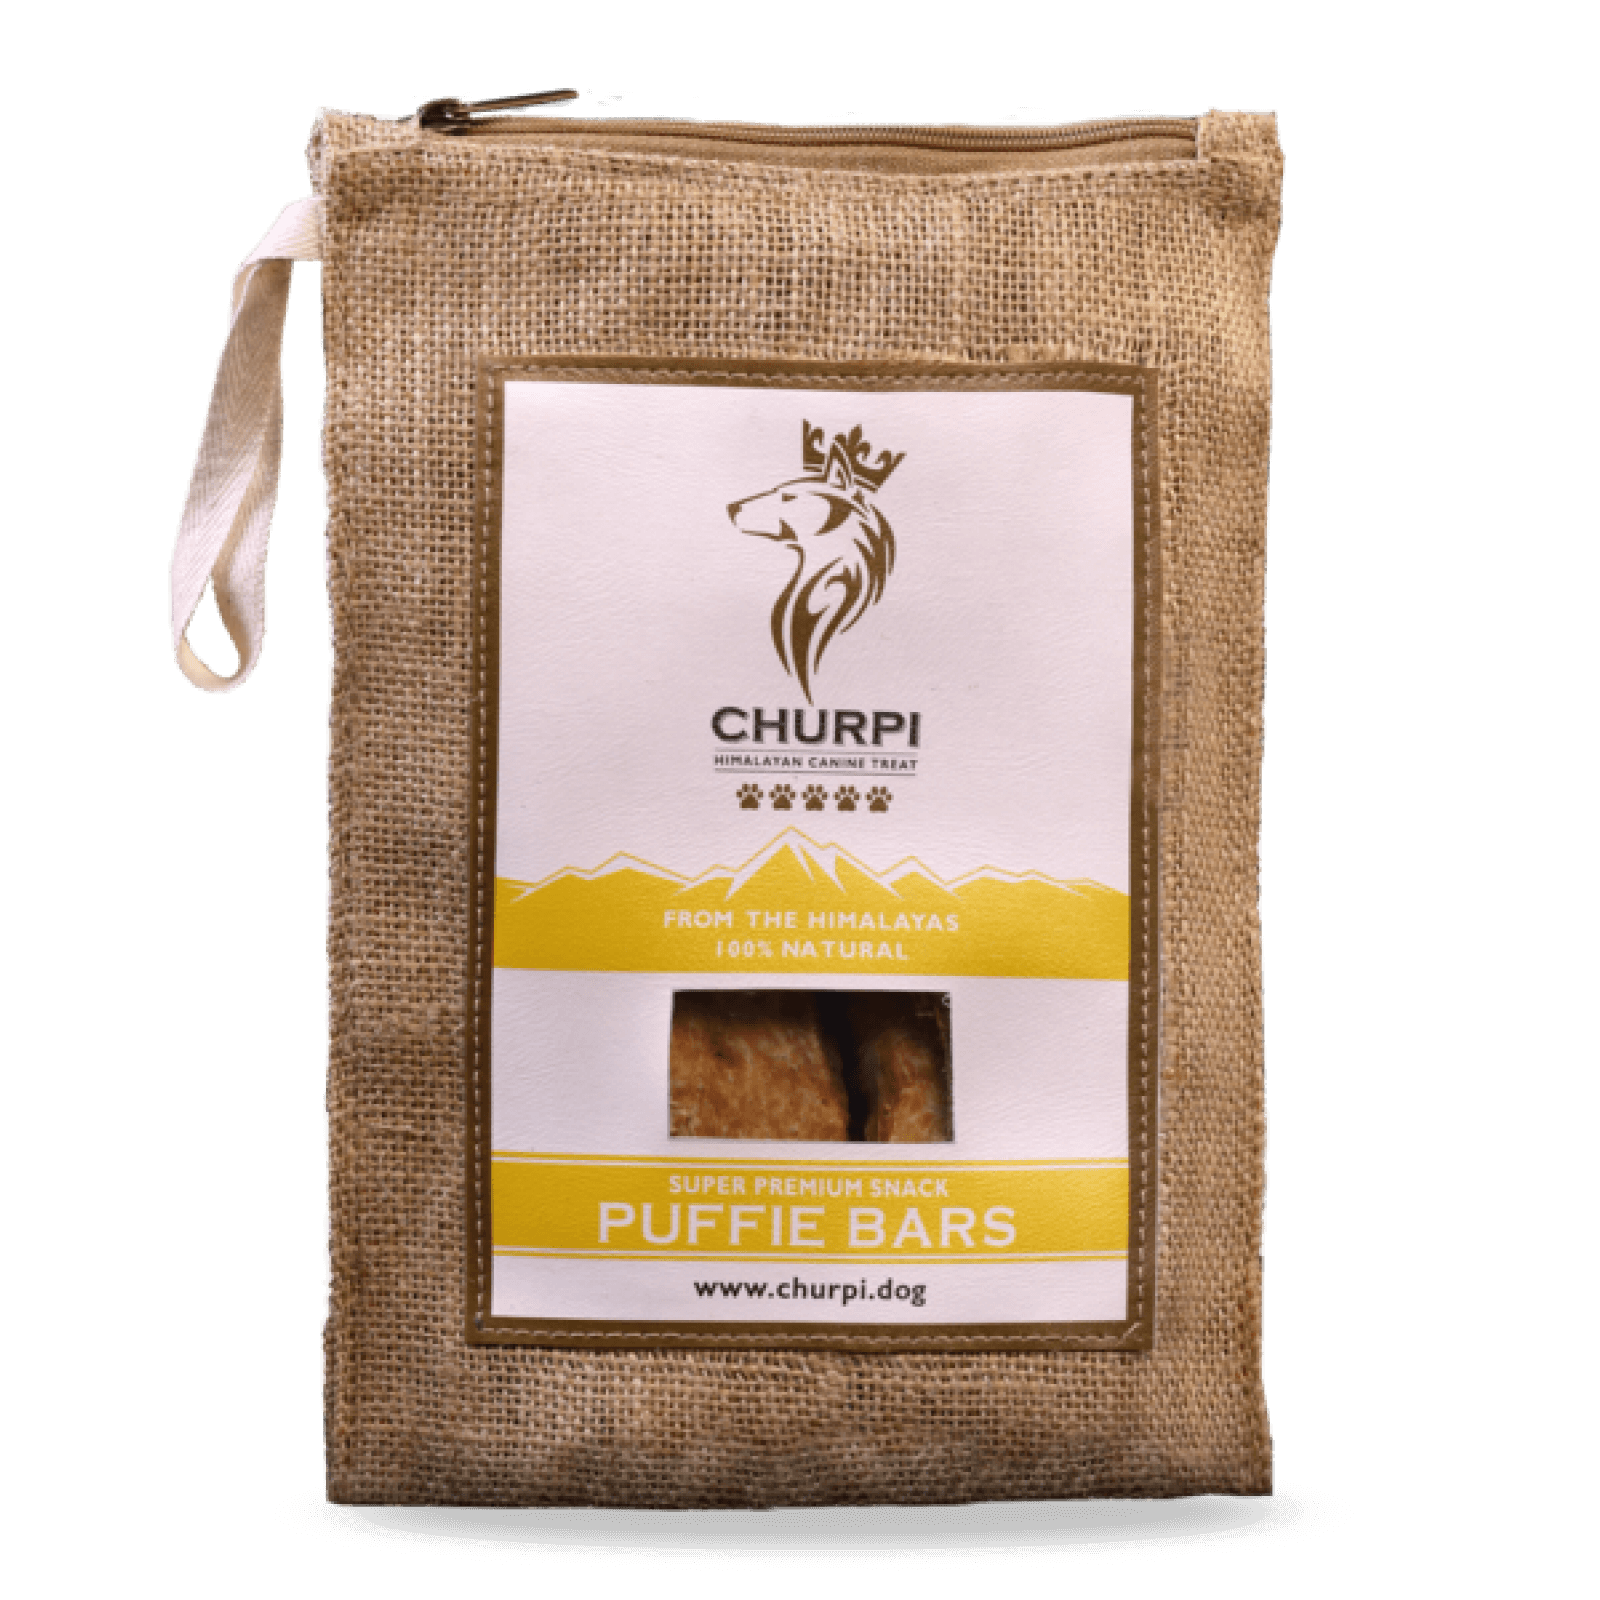 Churpi Puffie Bars